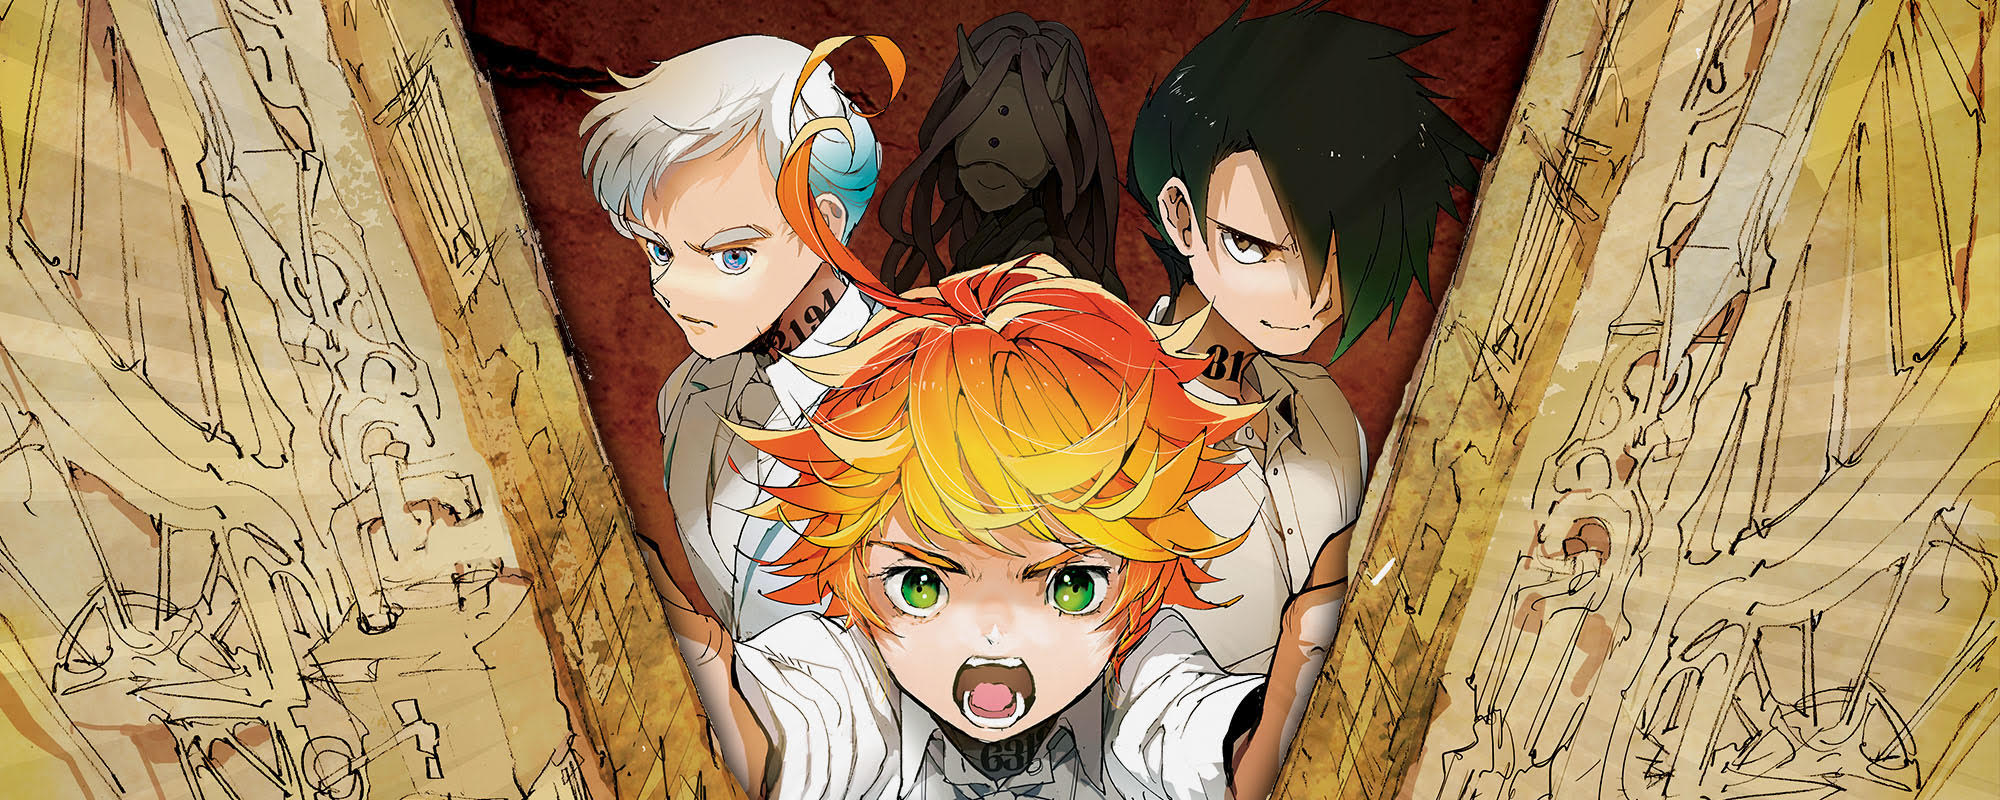 Our heroes return to the Seven Walls in The Promised Neverland.